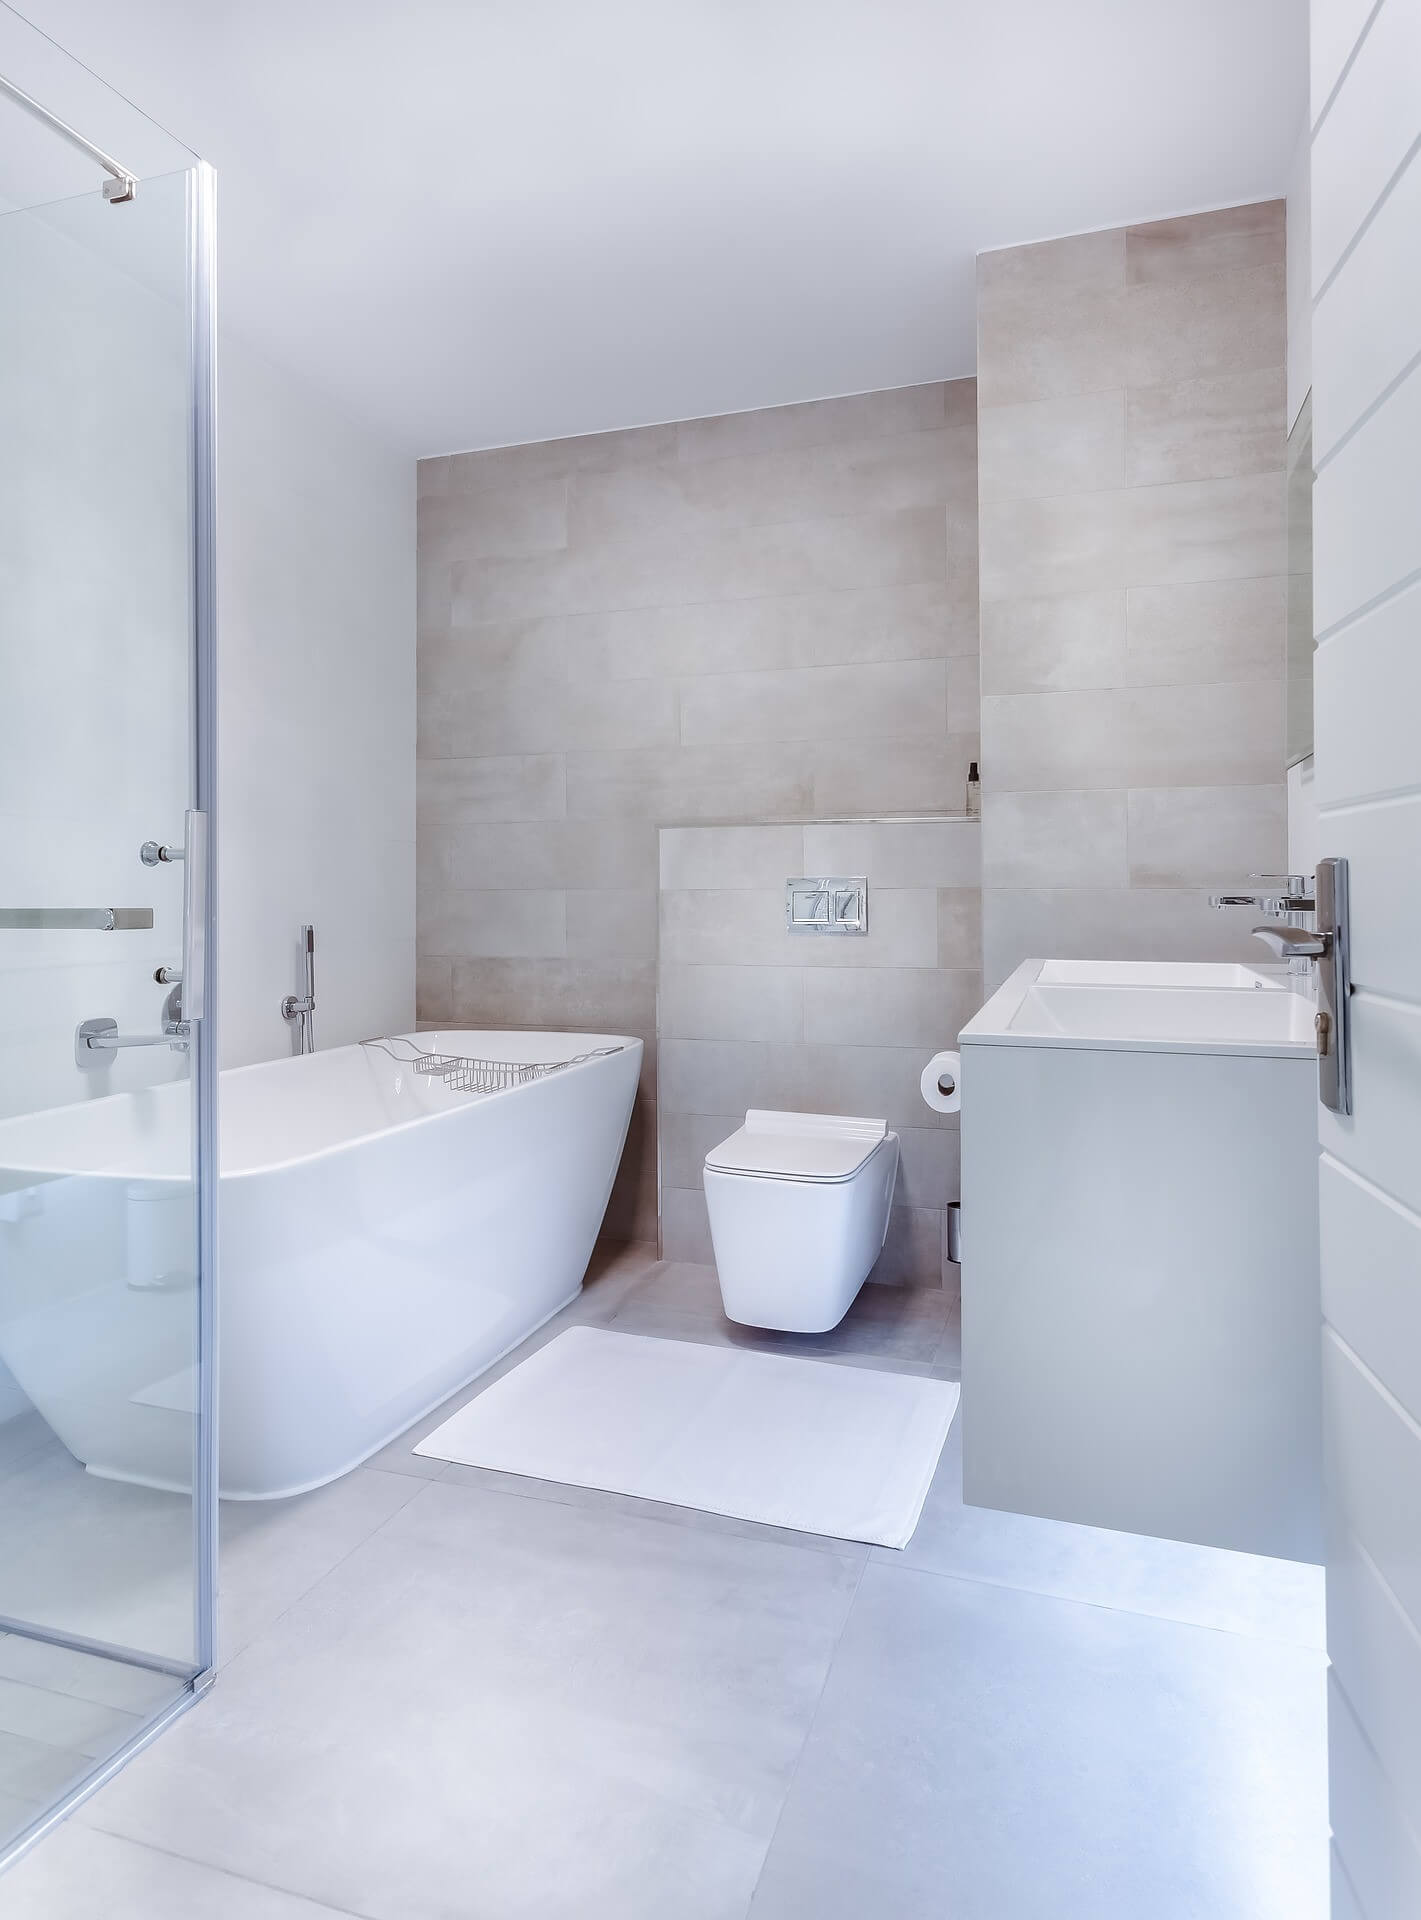 Highly minimalistic white-grey finish bathroom design with separate shower and standalone bathtub, toilet and double sinks